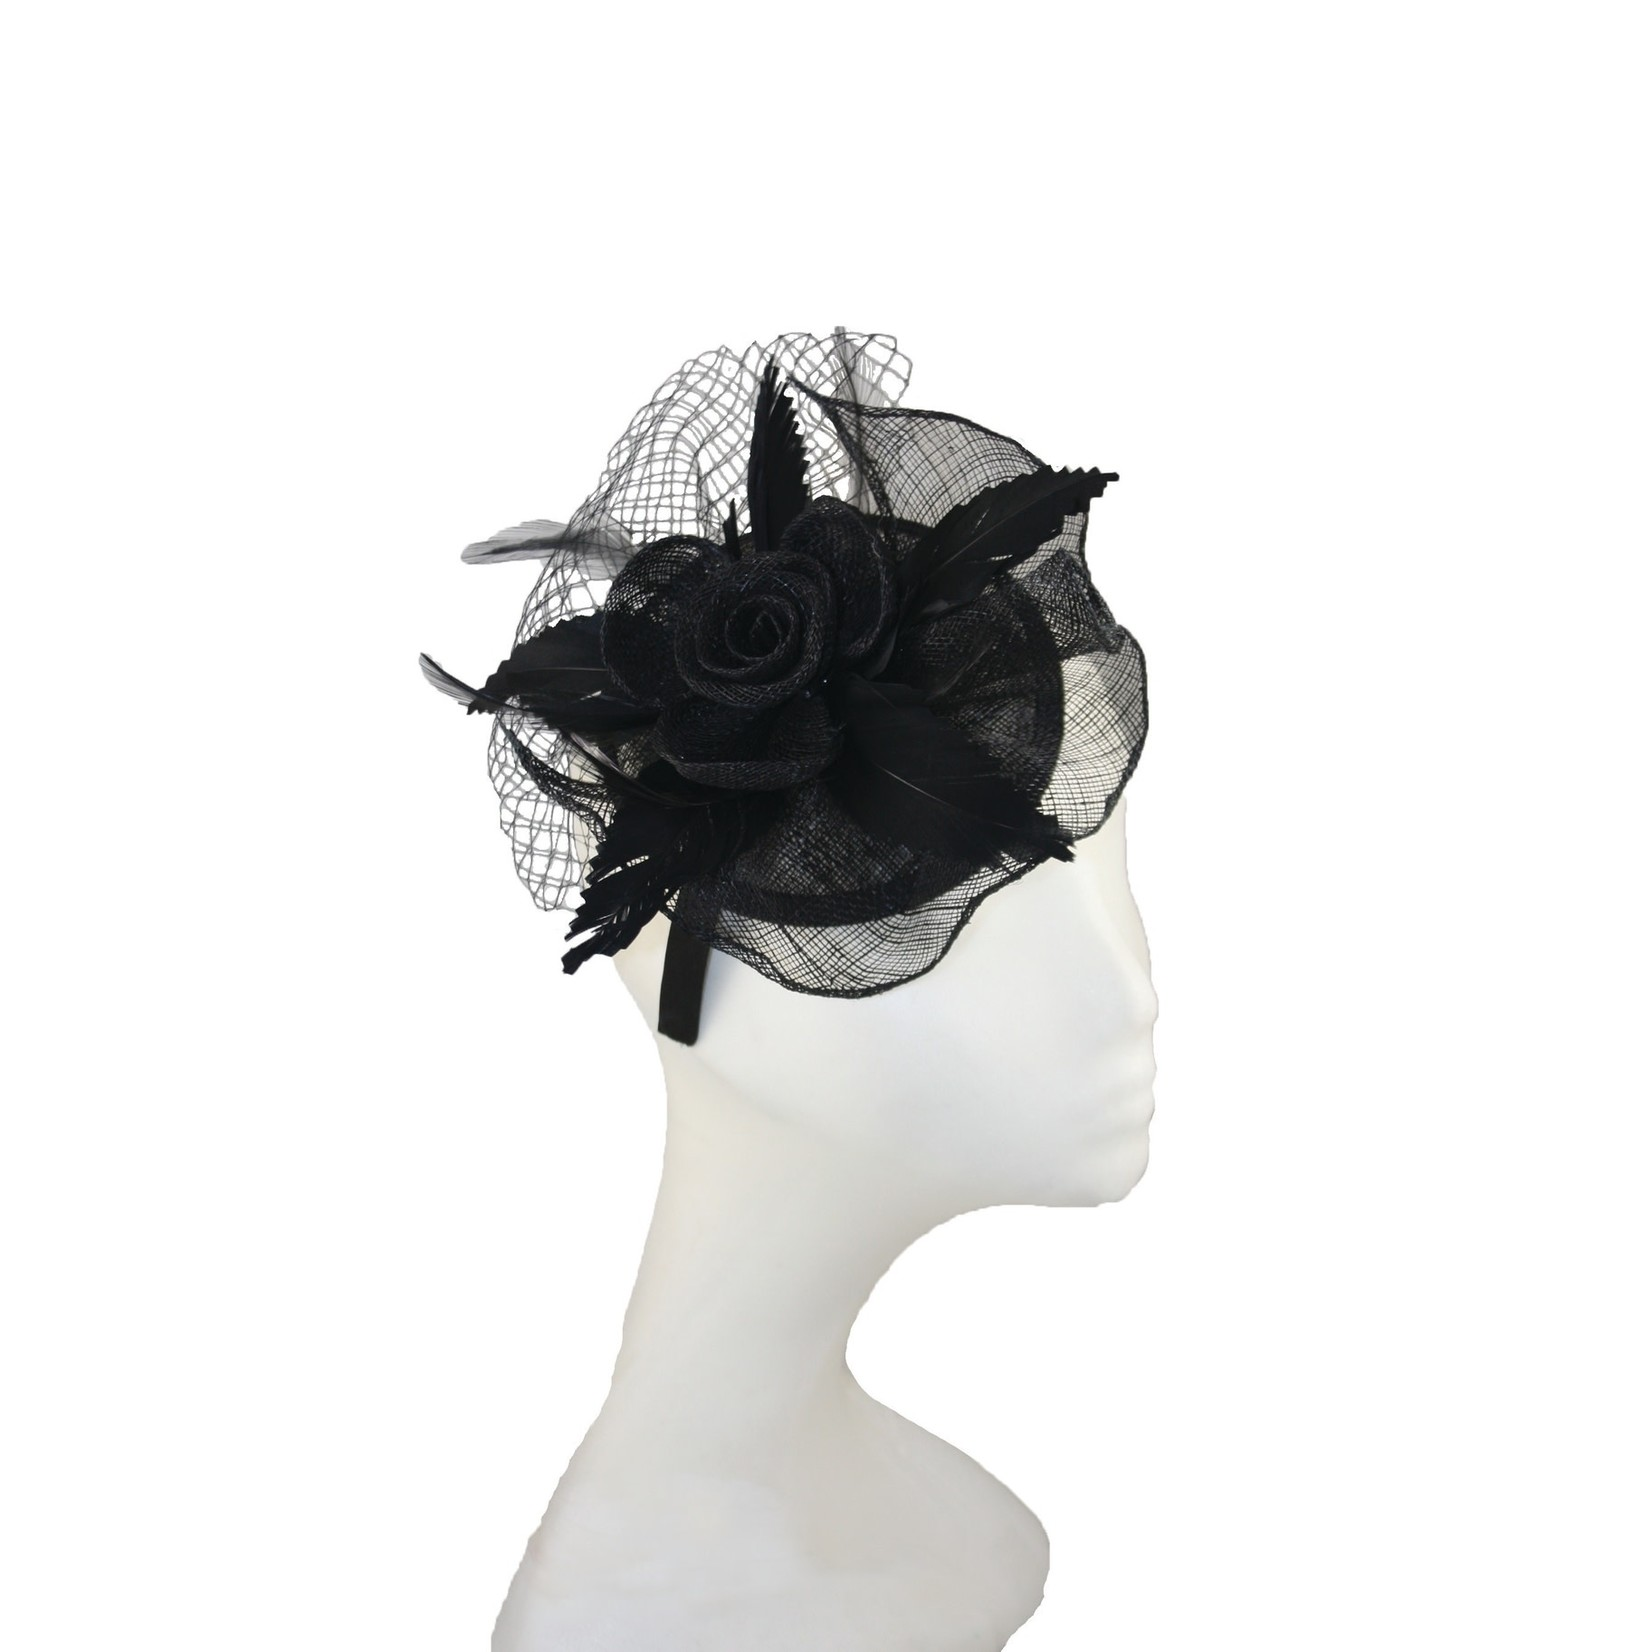 Jeanne Simmons Fascinator Headband W/Blk Netting and Flower on Small Sinamay Blk Disc